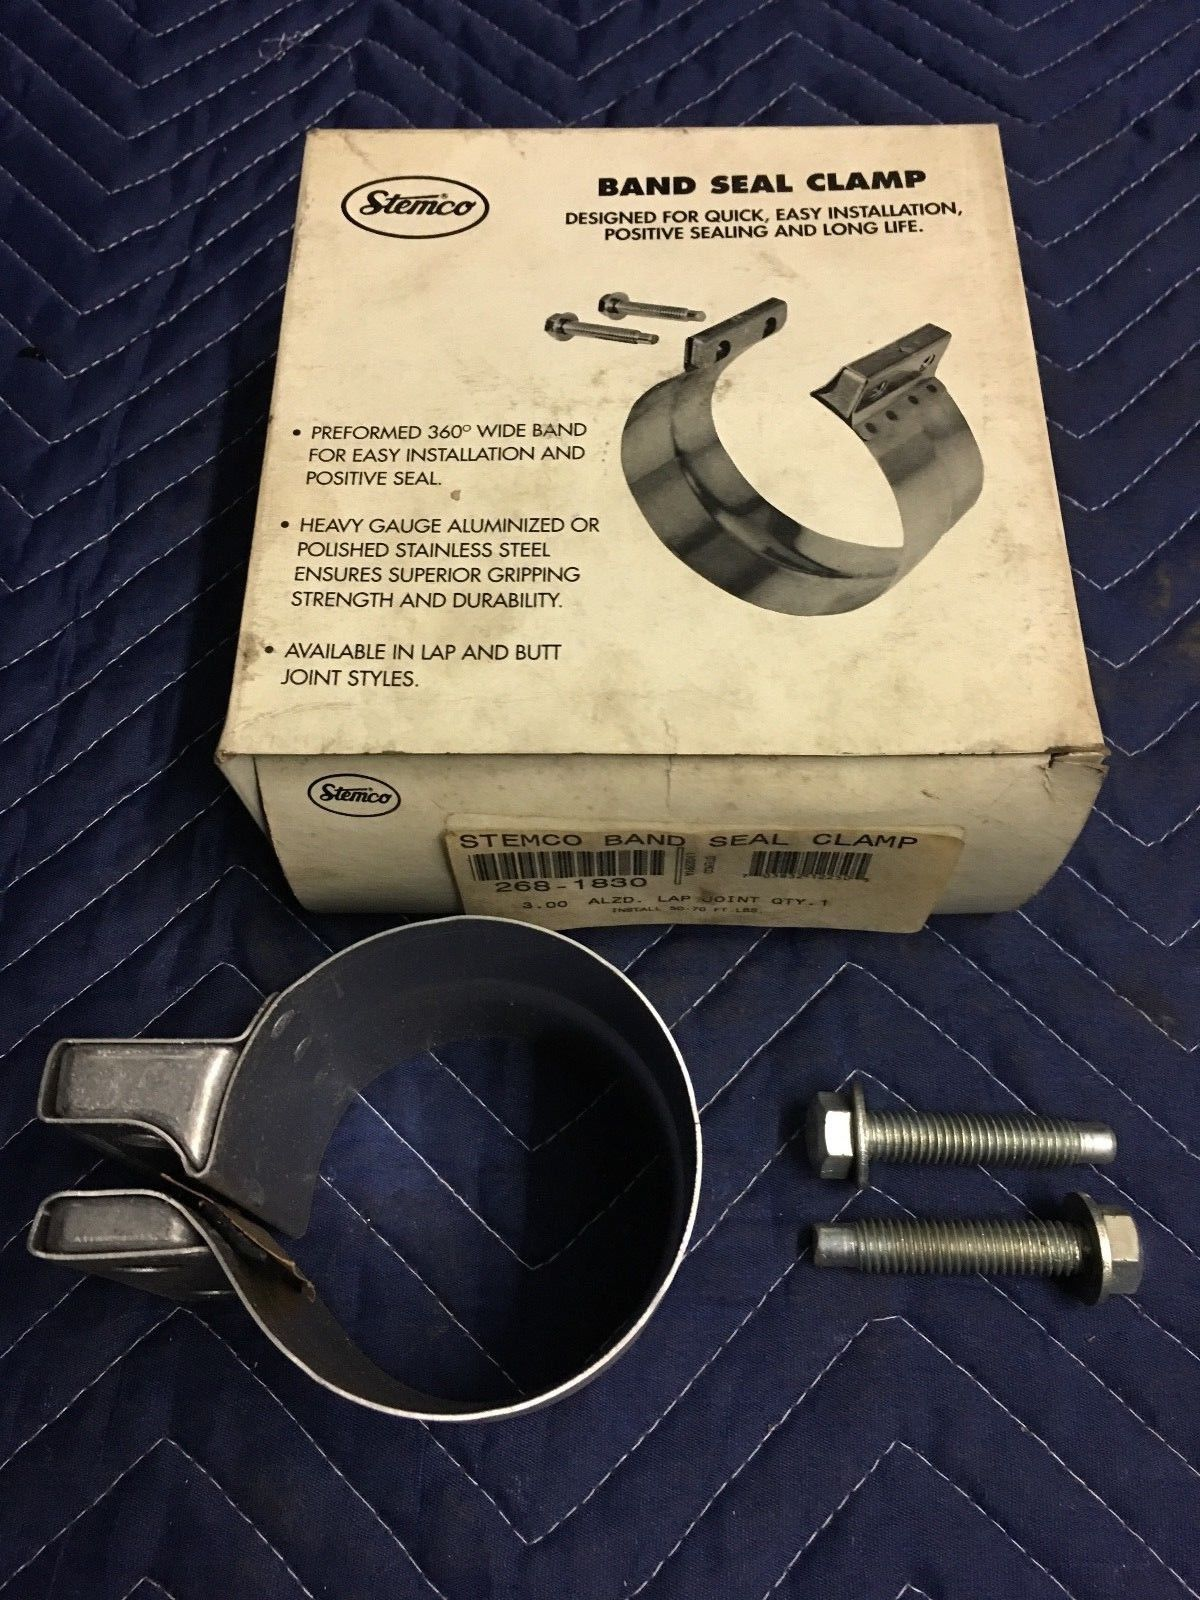 STEMCO 3 INCH LAP JOINT BAND SEAL CLAMP 268-1830 EXHAUST 2681830